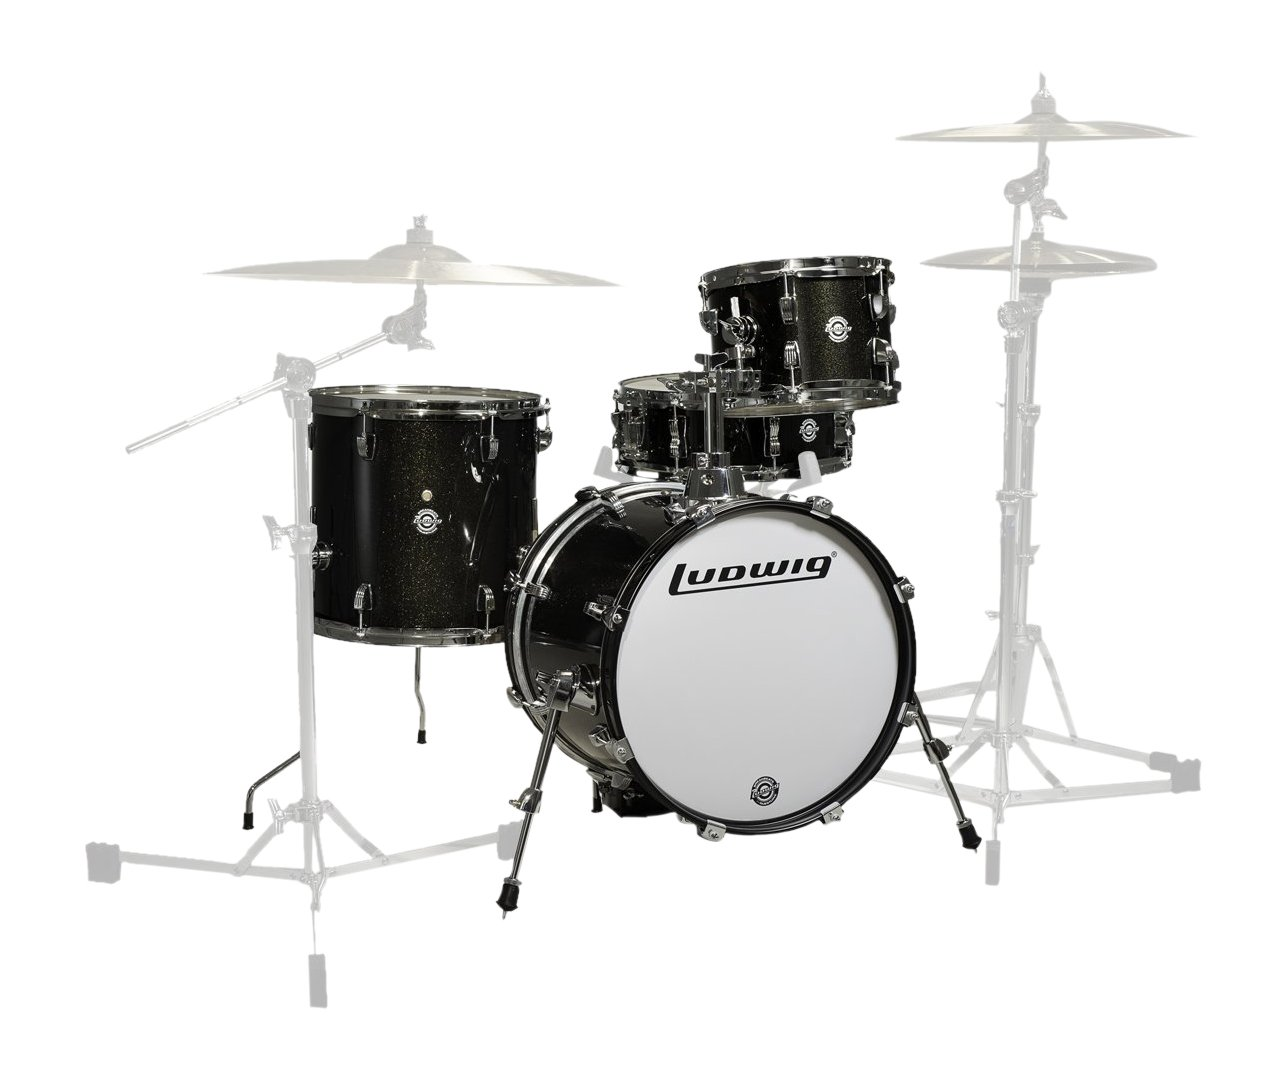 Ludwig LC179X016 Breakbeats 4 Piece Shell Pack with Riser, Black Sparkle